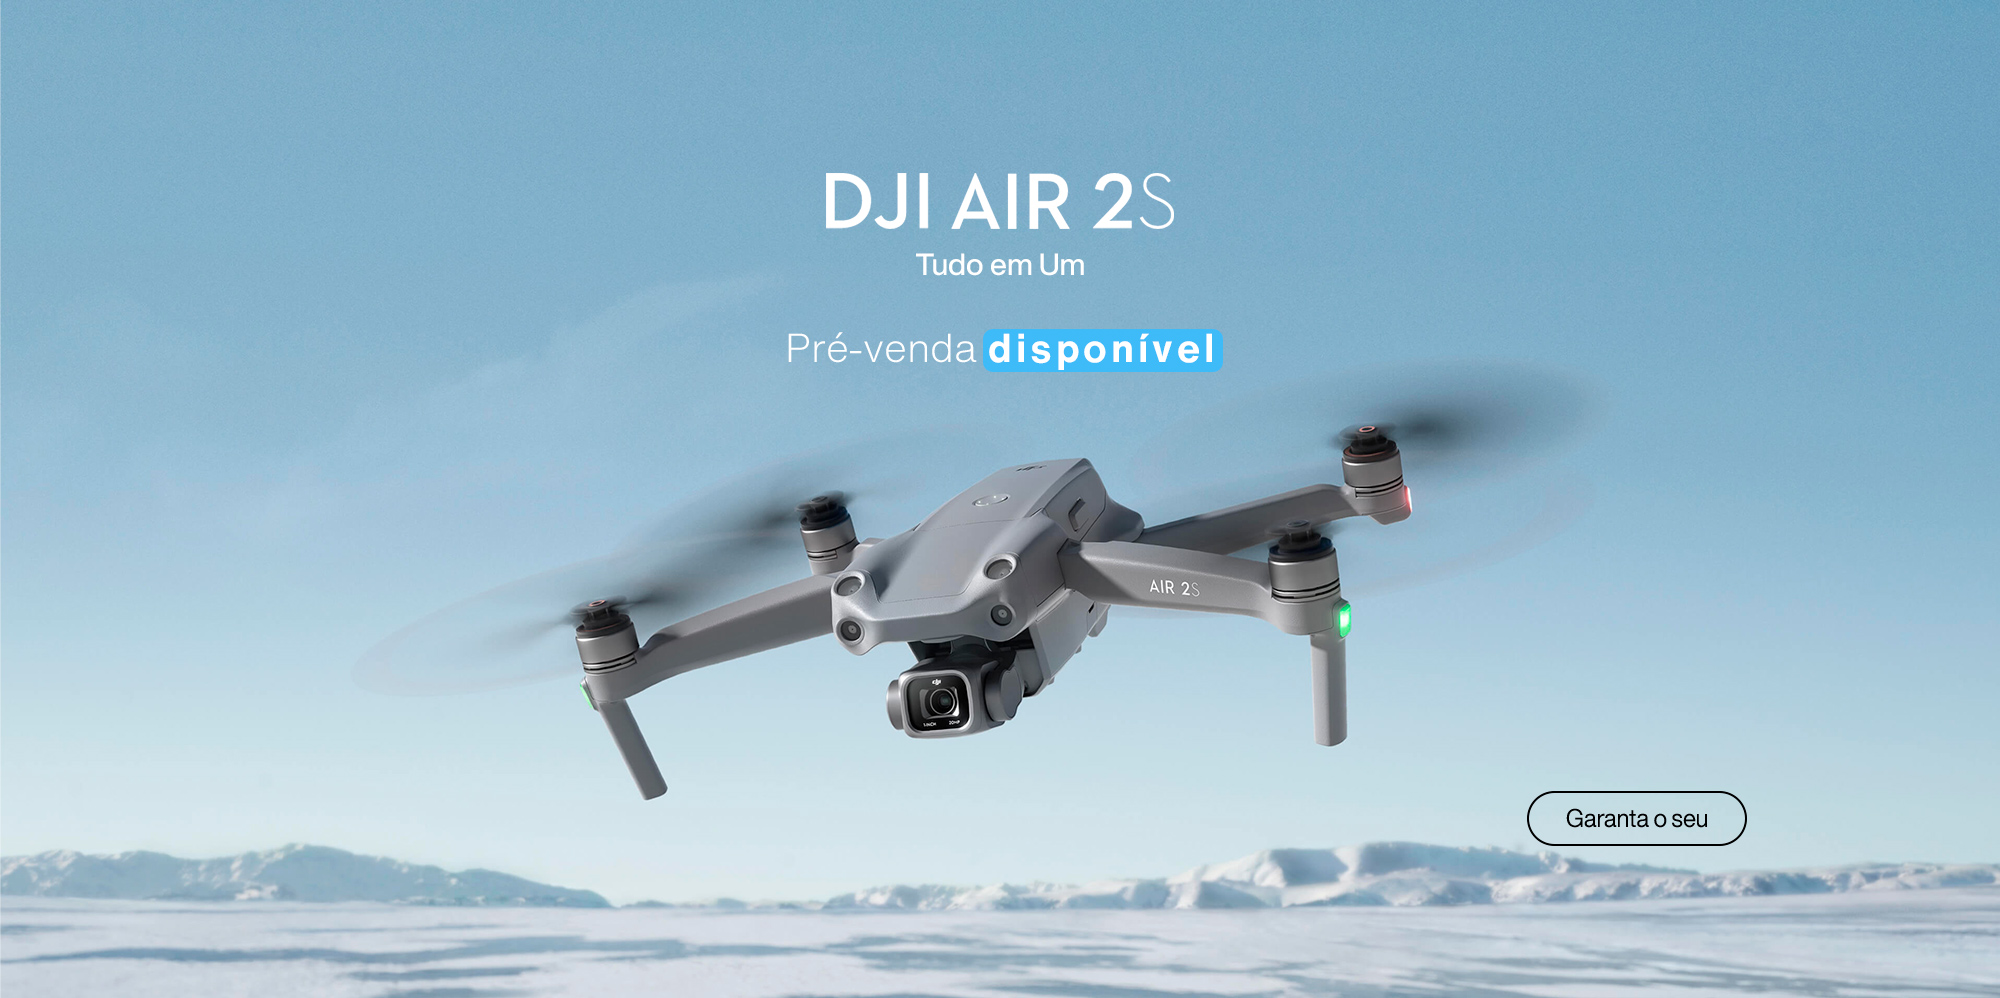 Mavic Air 2s